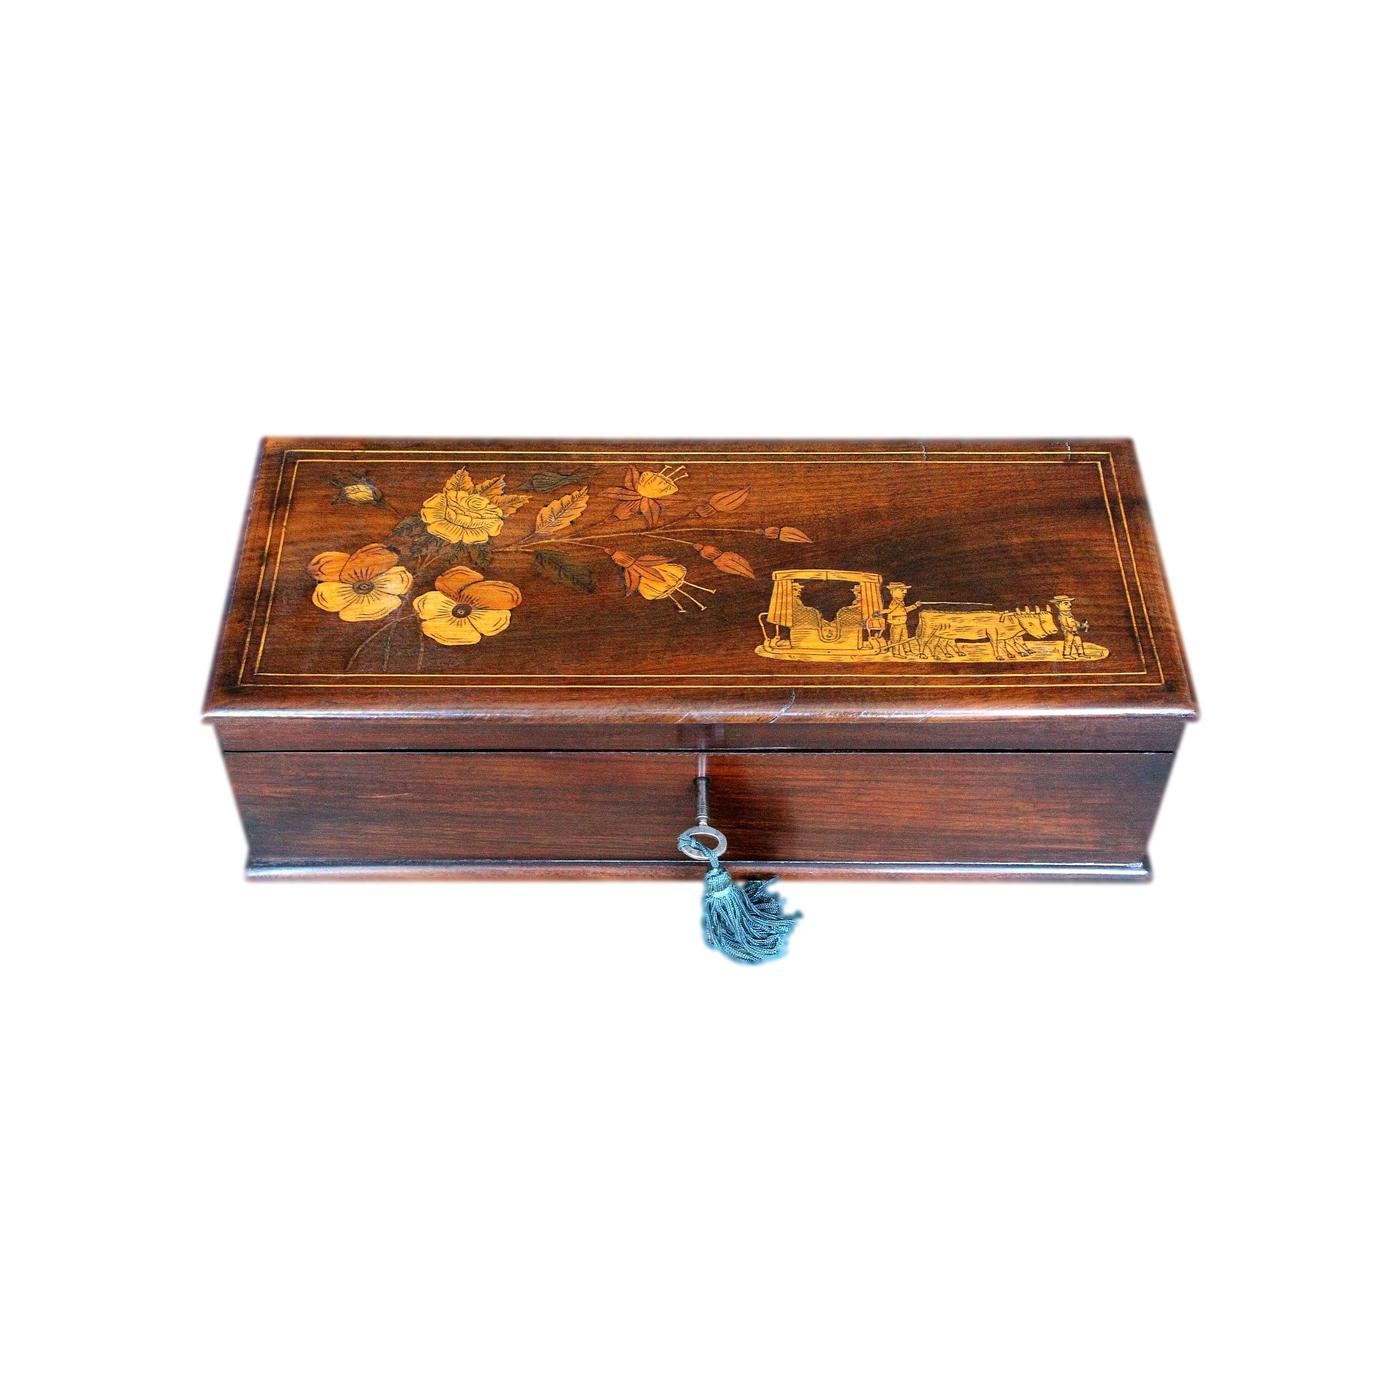 Beautifully Refurbished Inlaid Madeiran Antique Jewellery Box